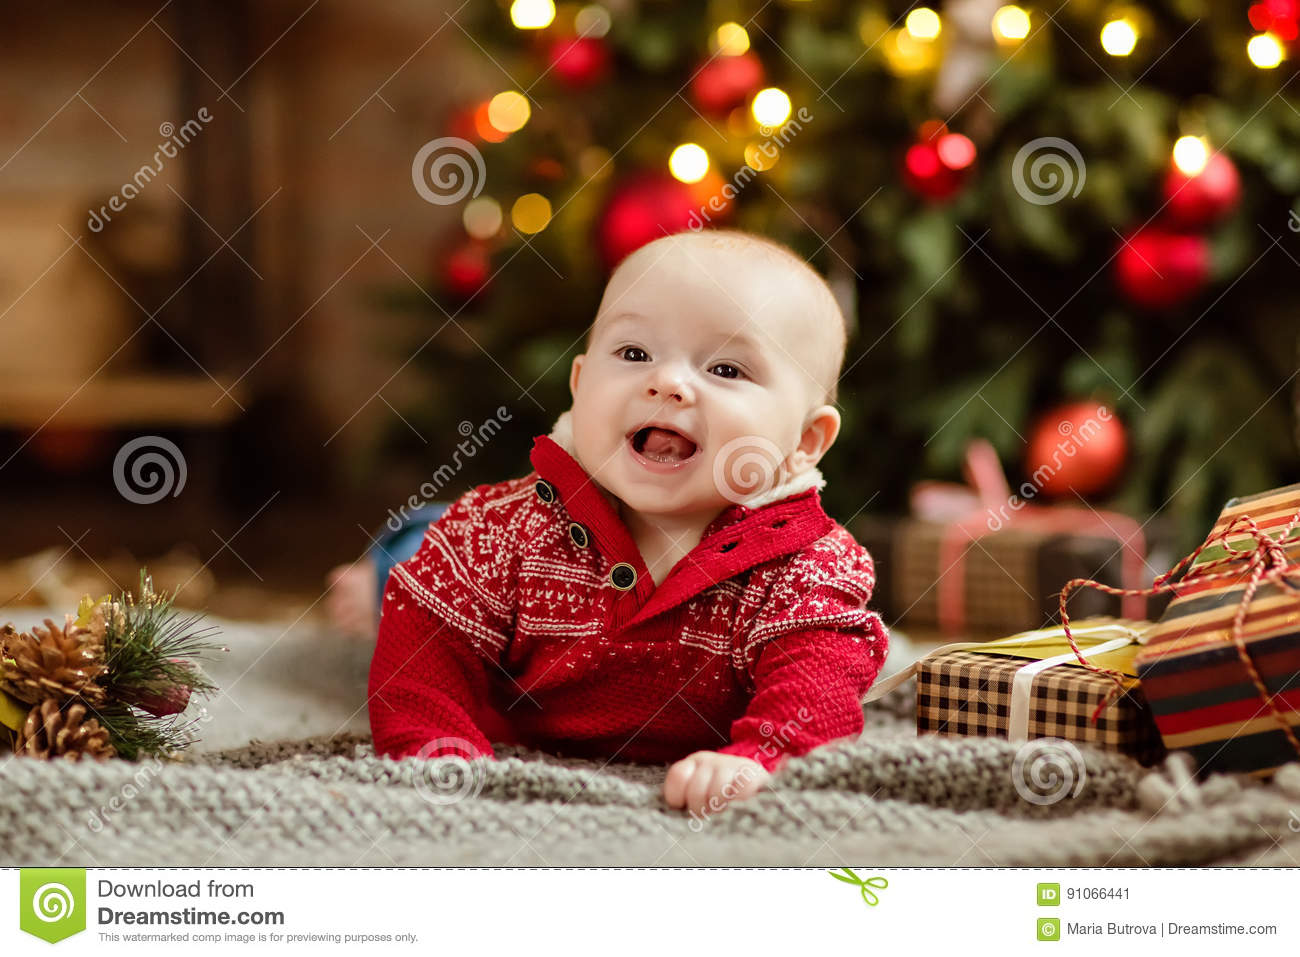 Little Boy The Kid In The Red Sweater Lying On A Cozy Blanket On